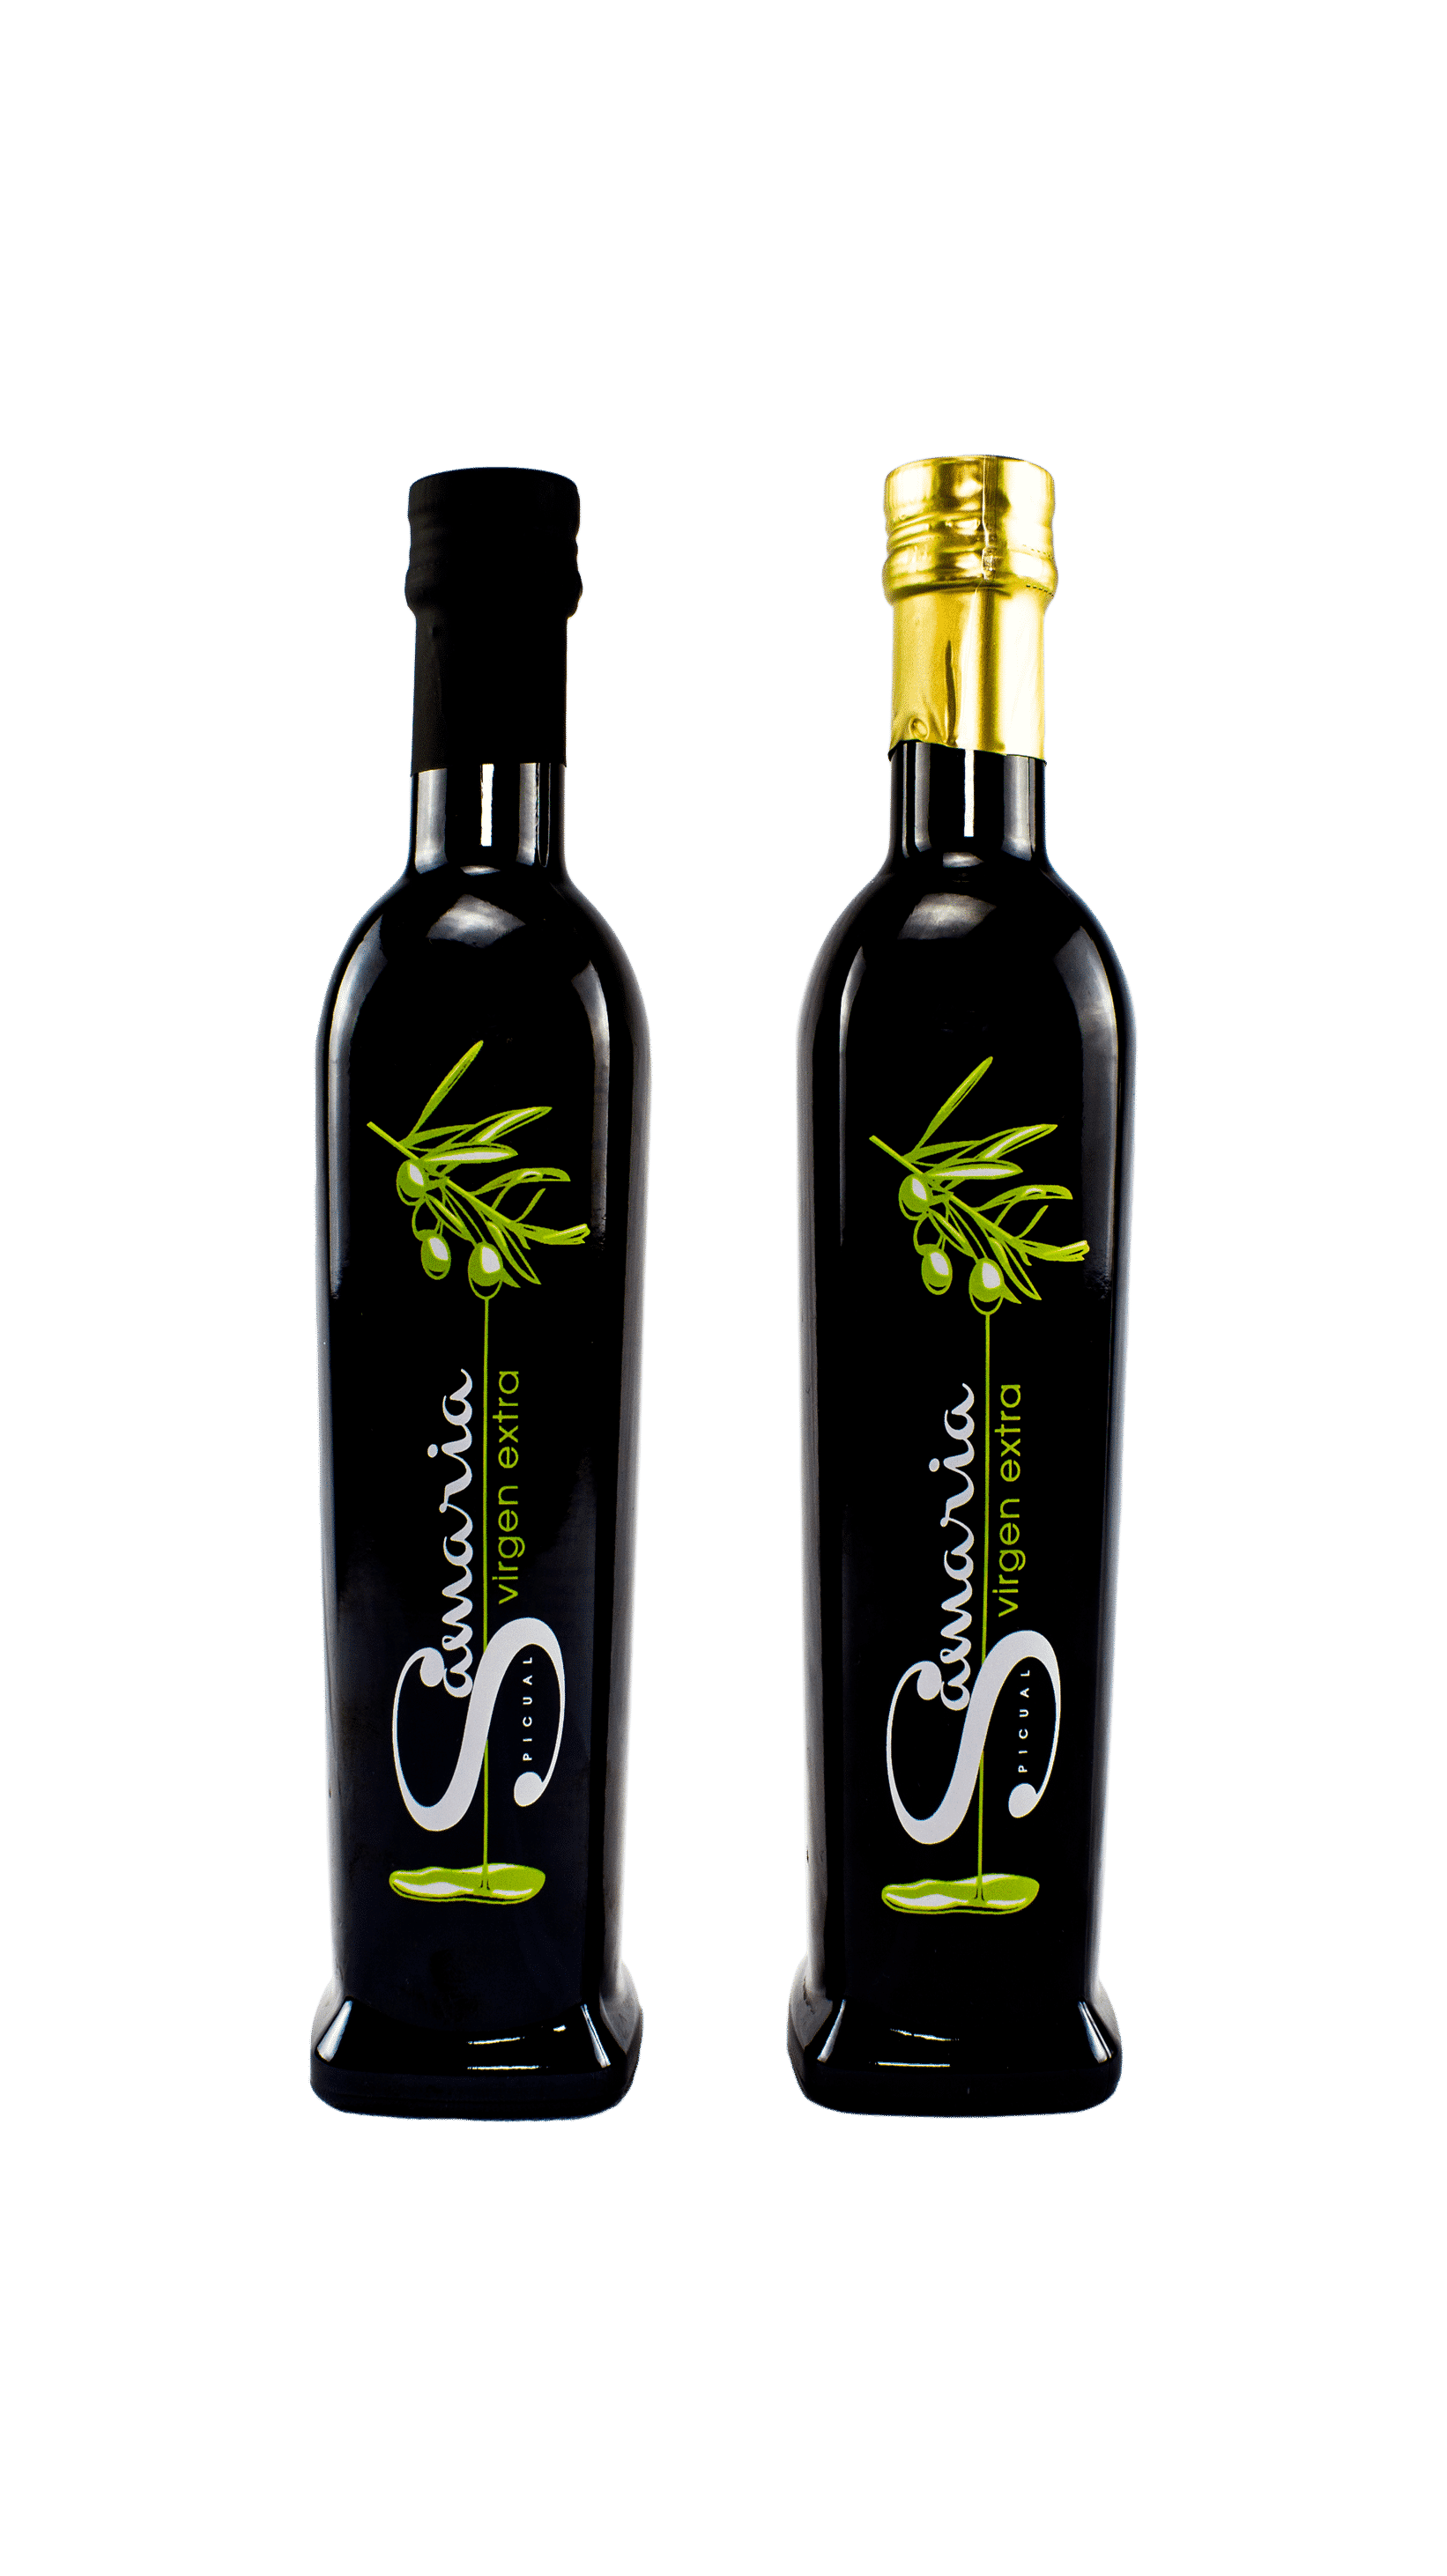 botellas samaria seleccion